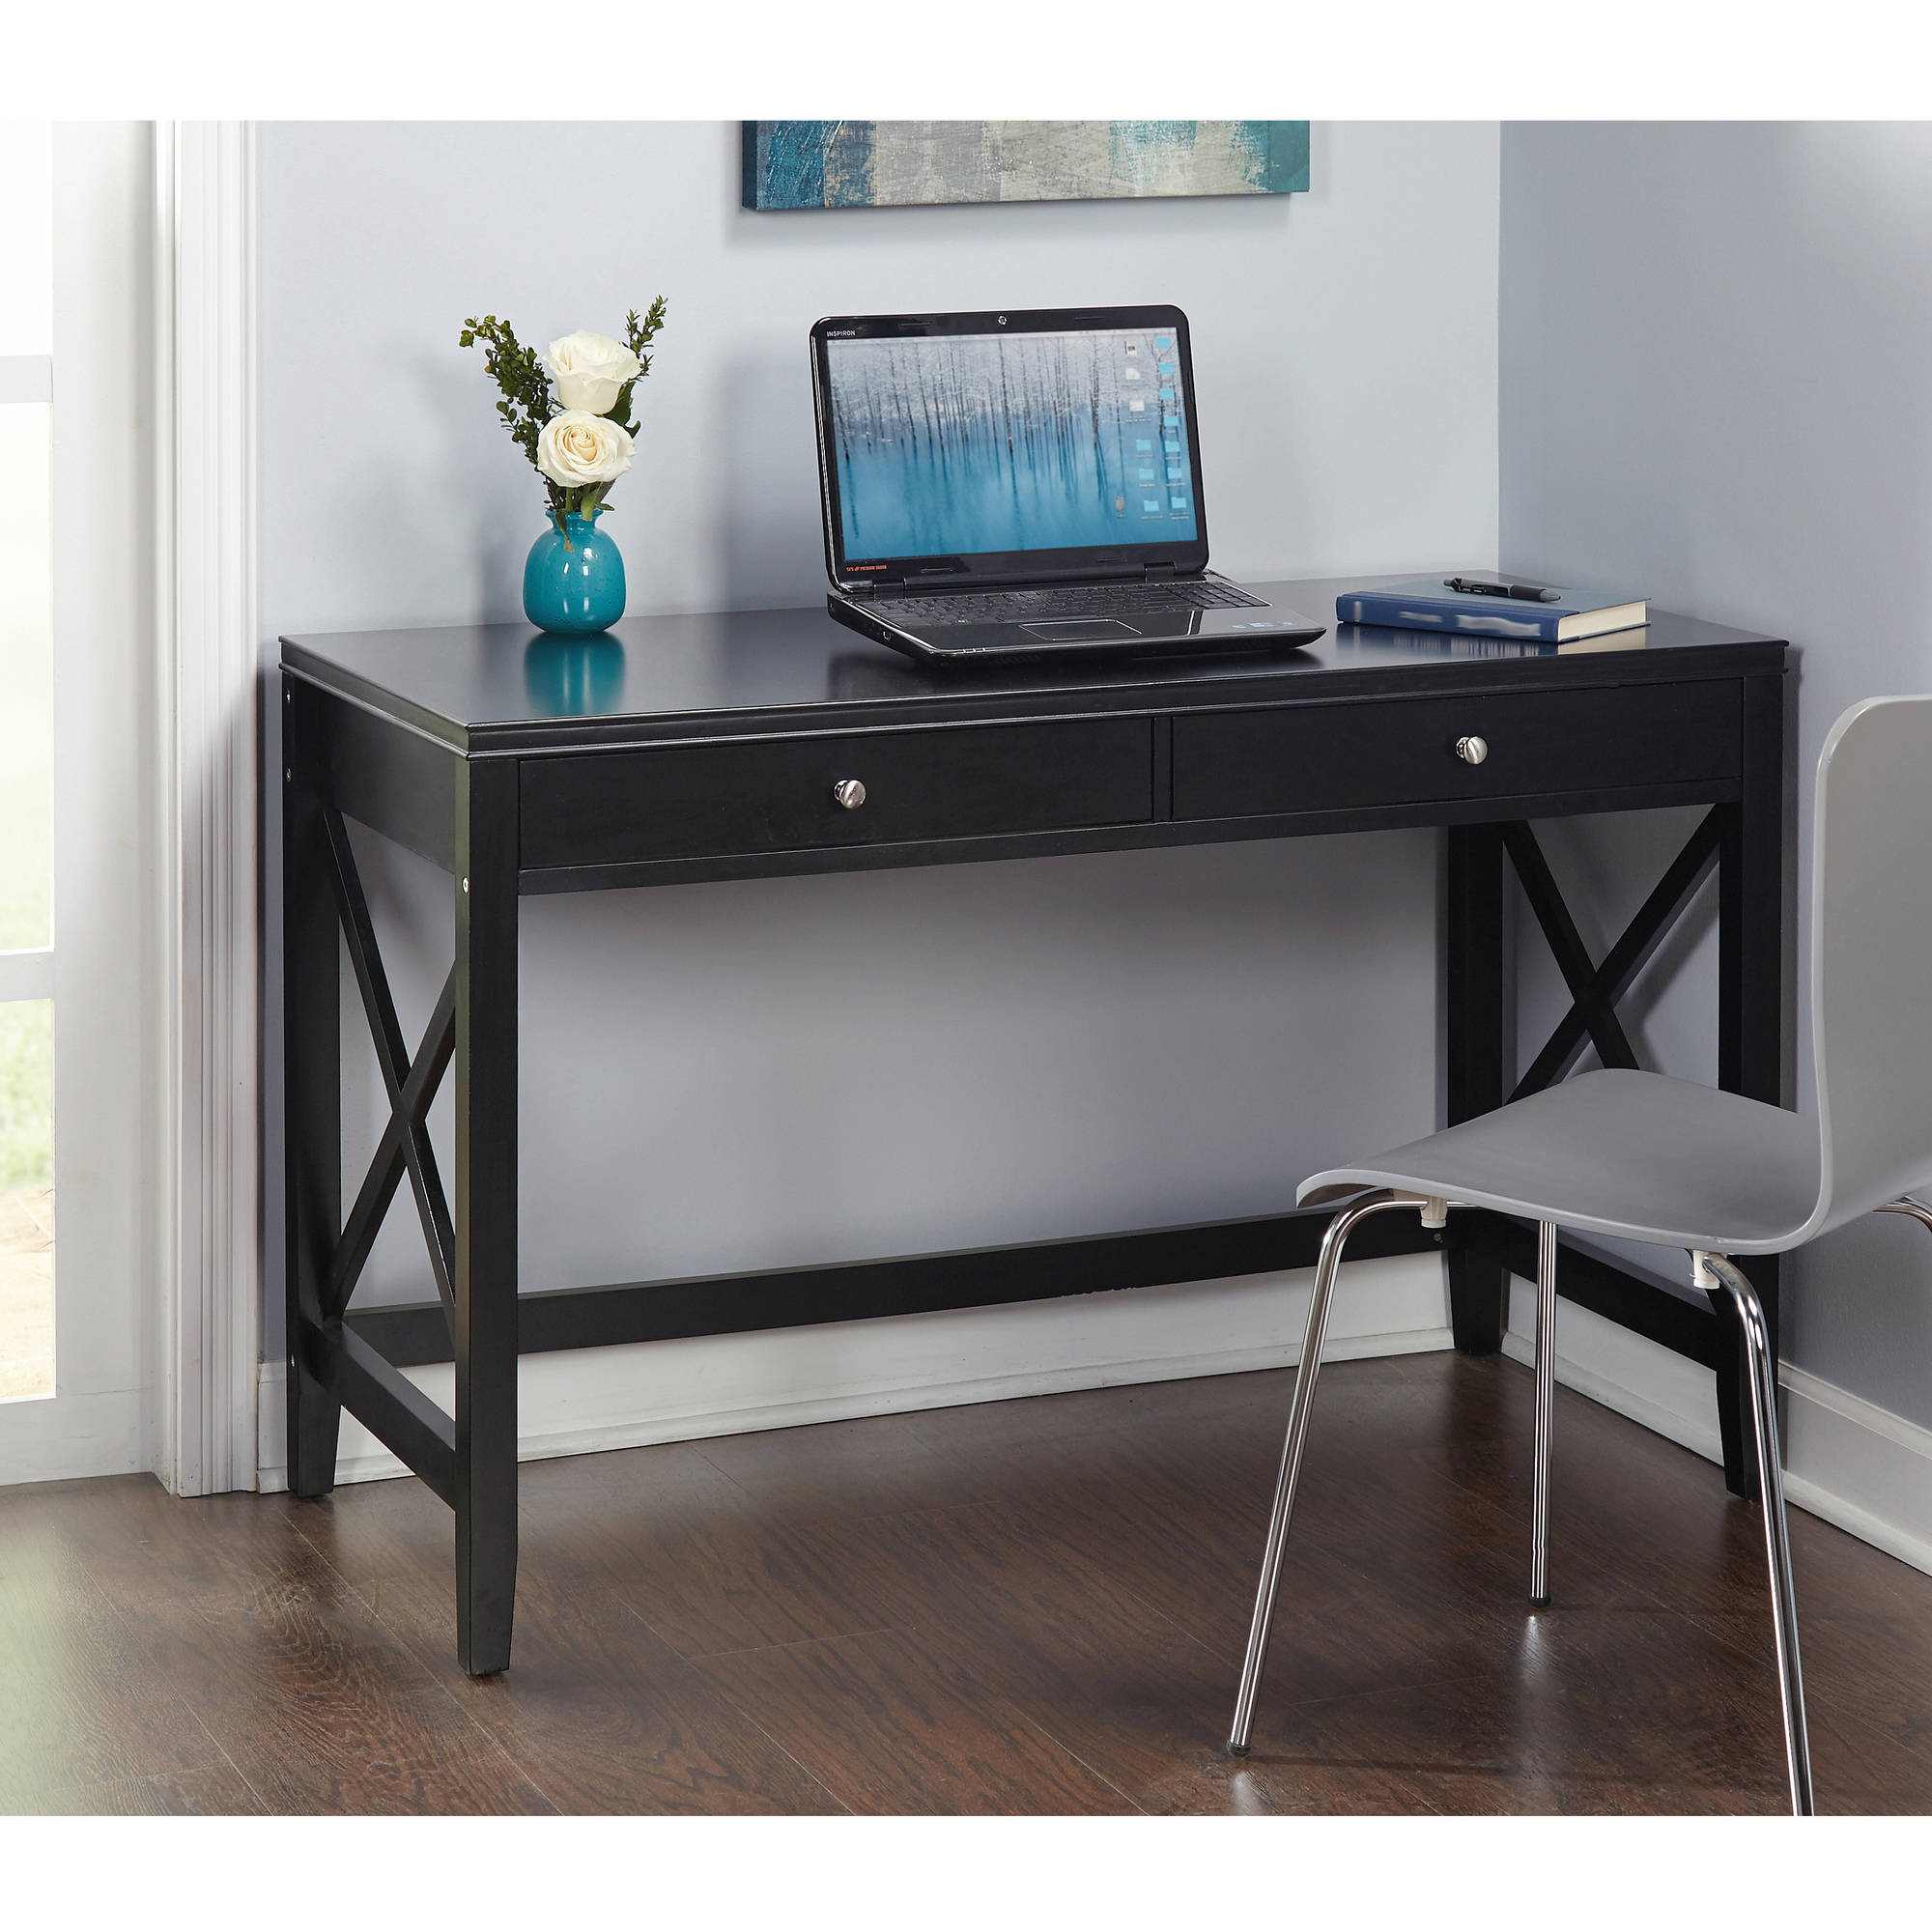 X Desk with Two Drawers, Multiple Colors